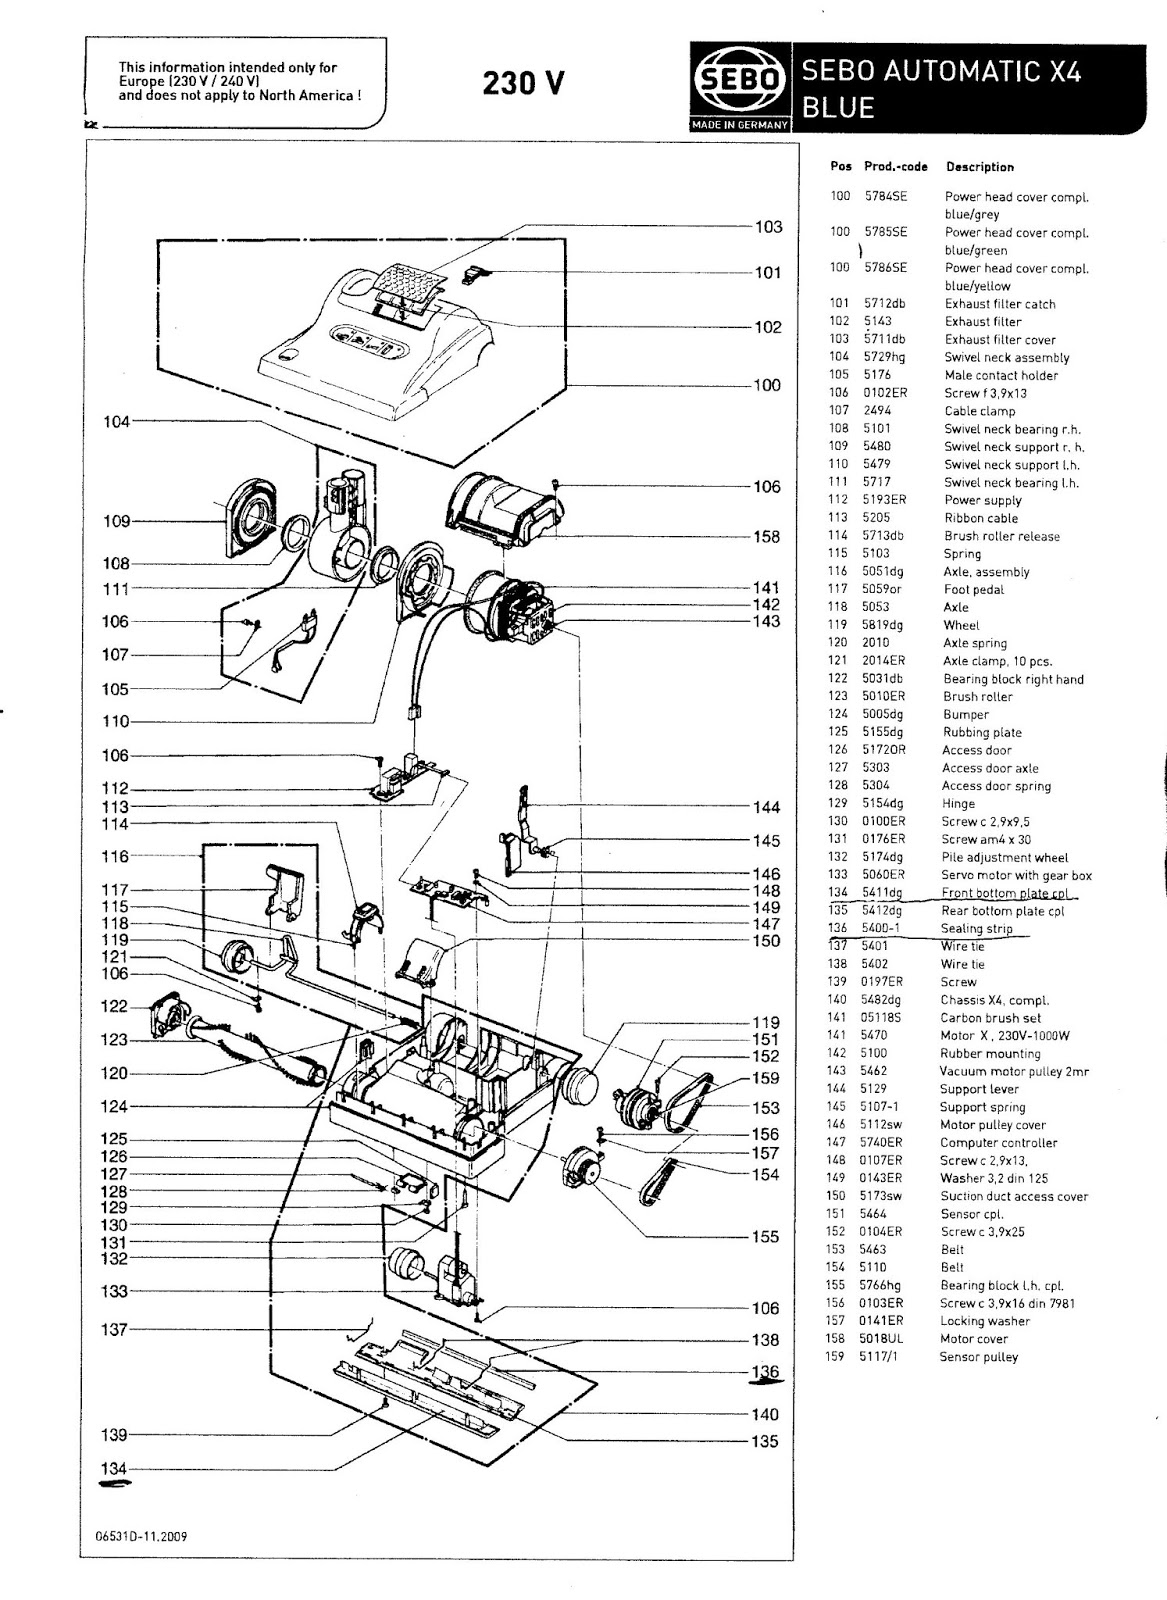 hight resolution of this is the parts diagram and exploded view for the sebo x4 vacuum with blue part numbers ideal for working out what you need and contacting